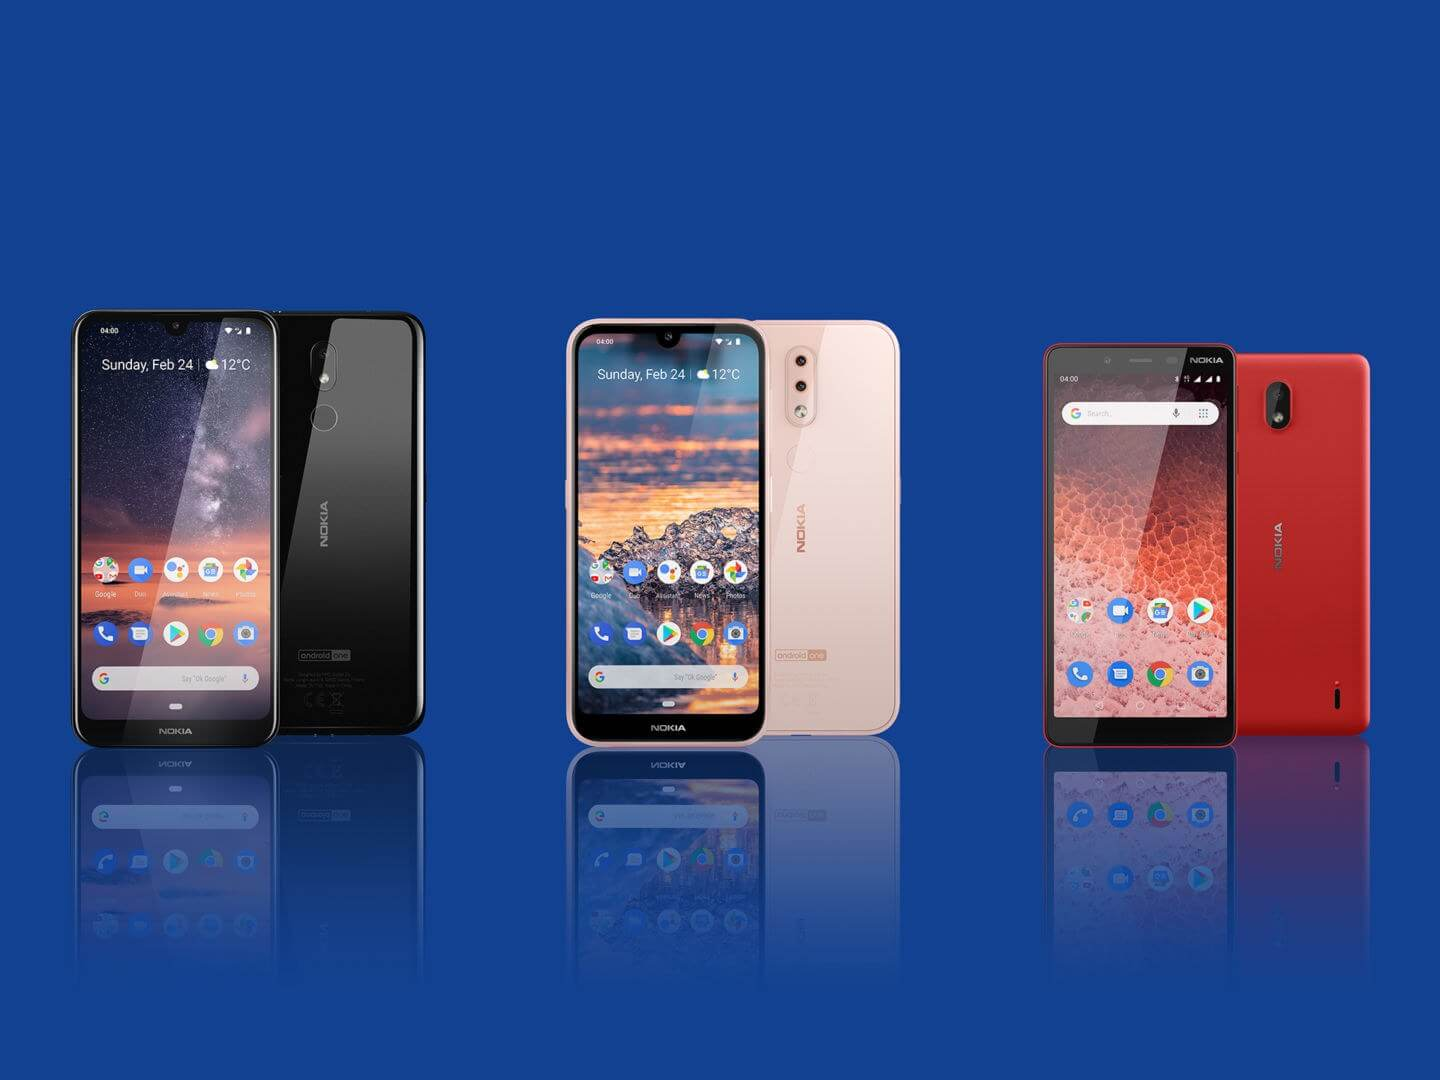 Nokia's Android One phones offer some enticing features for under